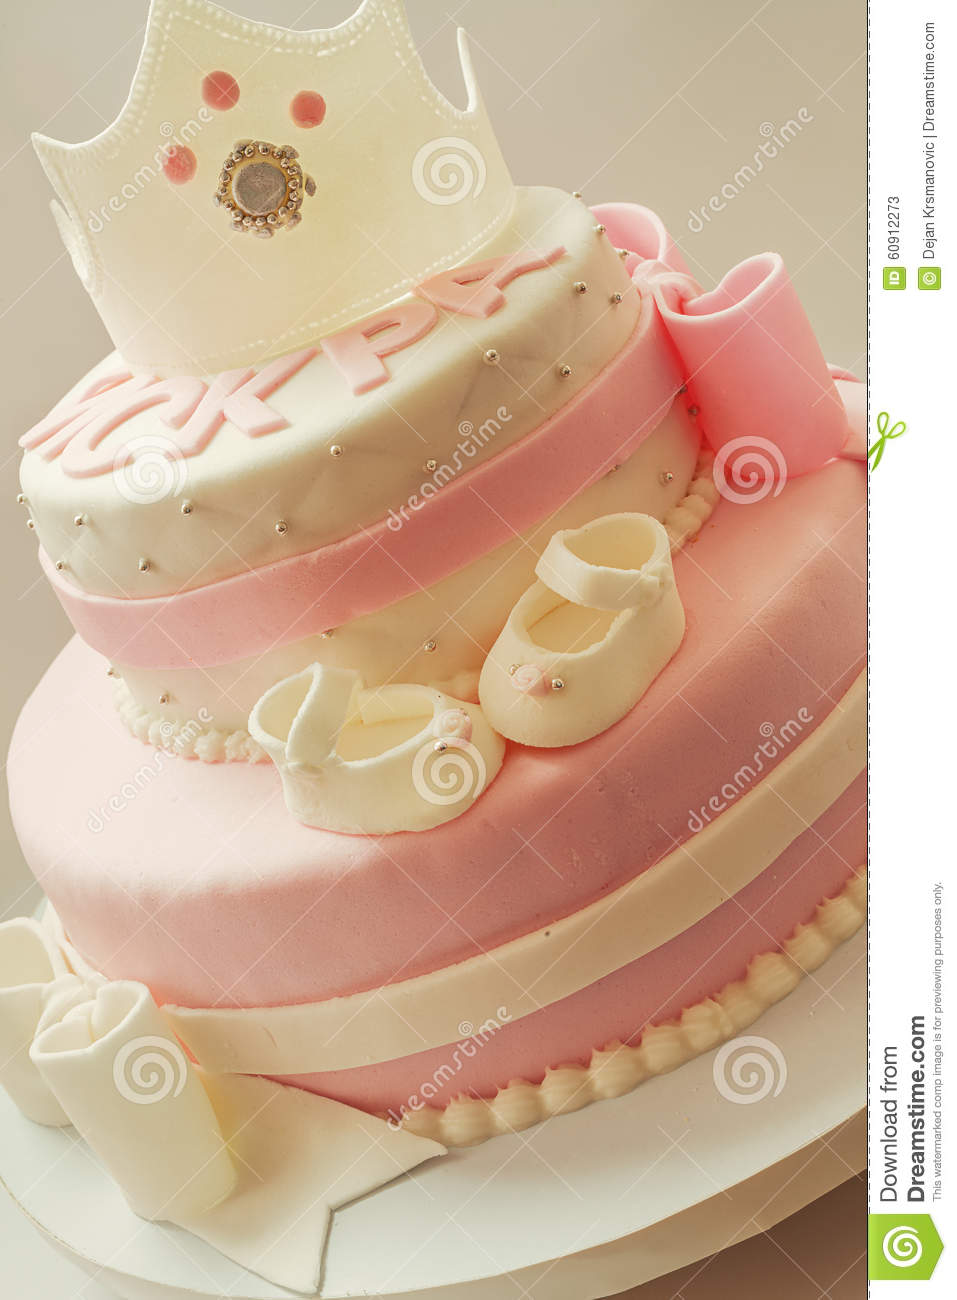 Birthday cake for baby queen stock photo image 60912273 for Baby footprints cake decoration